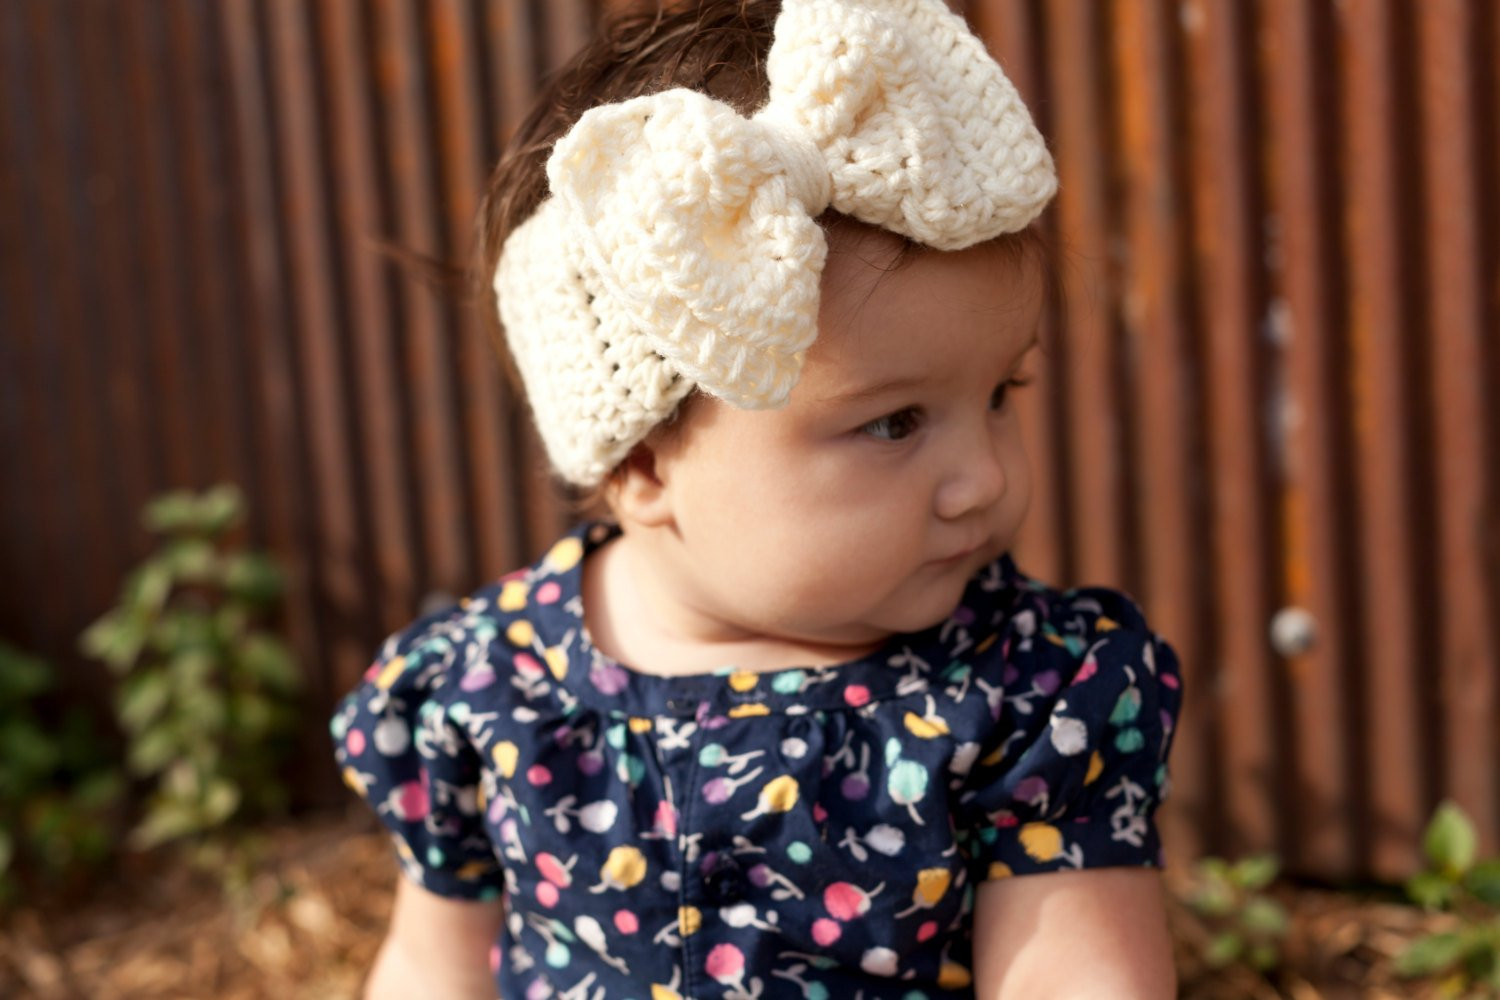 Best Of Crochet Big Bow Ear Warmer for Babies Baby Headband Baby Ear Babies Crochet Headbands Of Awesome 49 Photos Babies Crochet Headbands